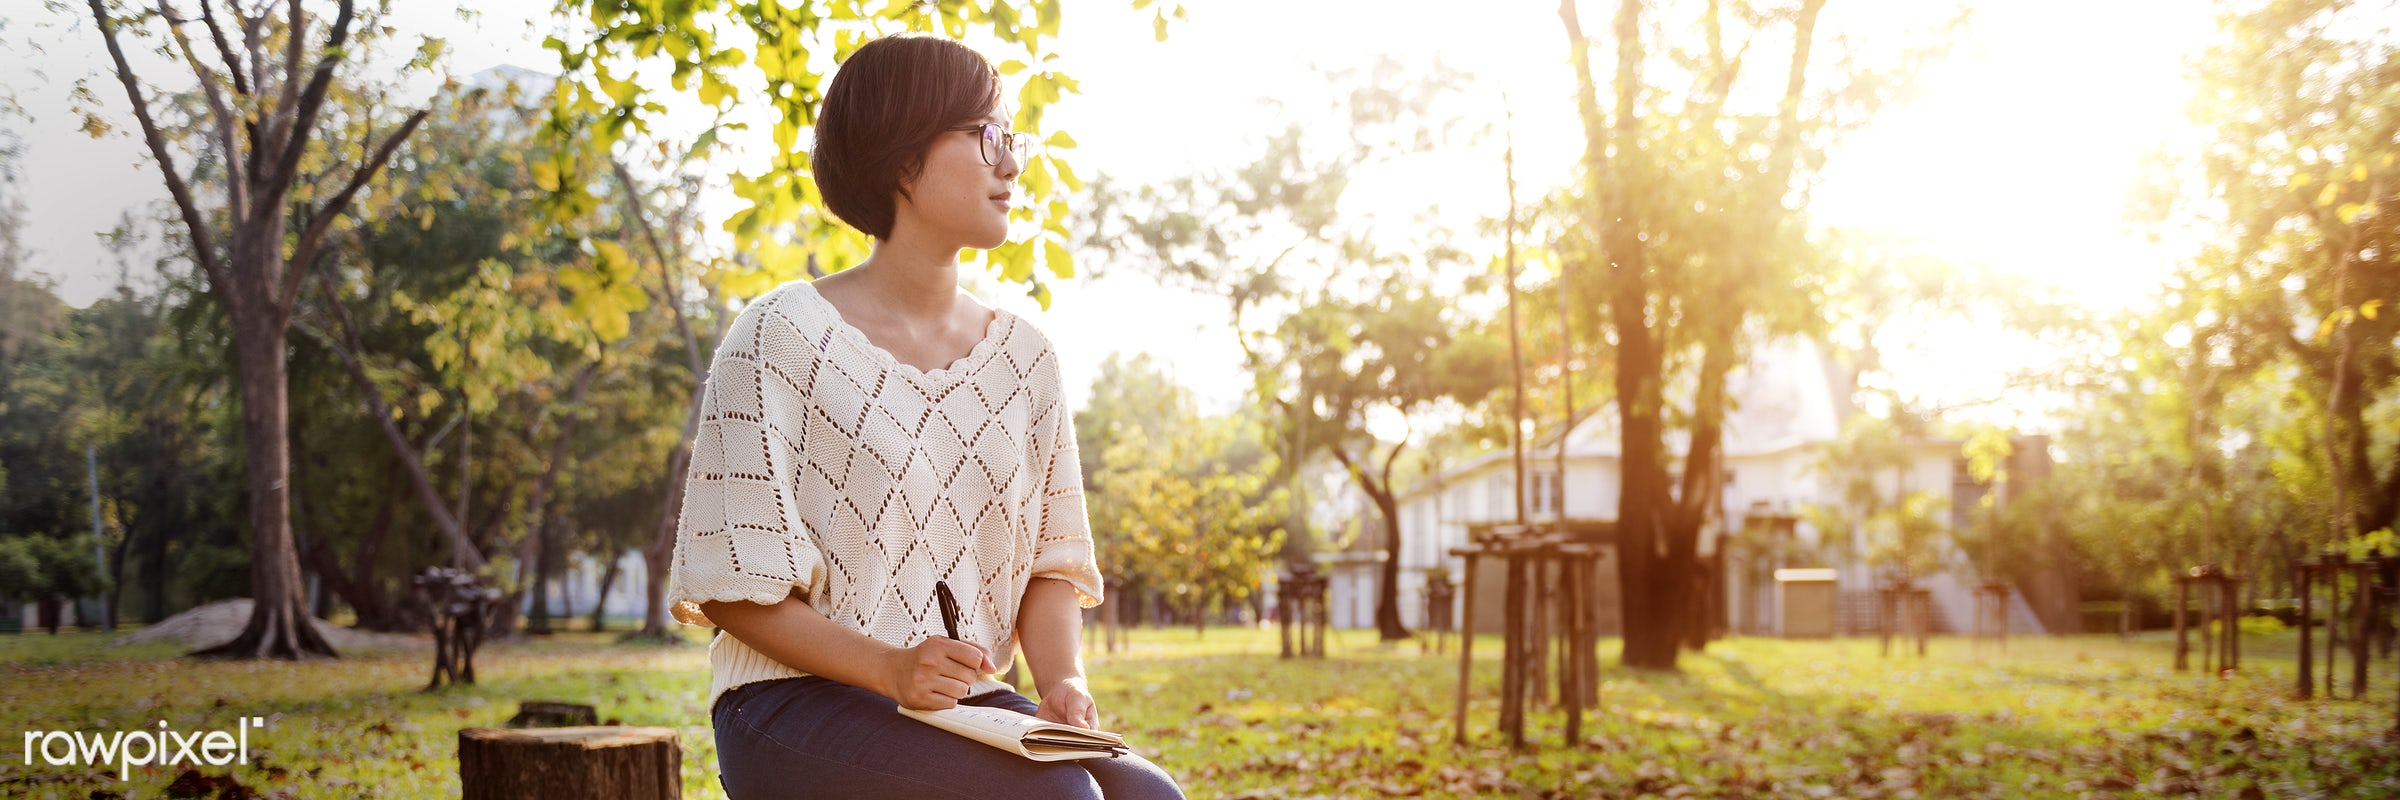 alone, asian, attractive, beautiful, book, brunette, day, diary, education, girl, glasses, grass, green, happy, house,...